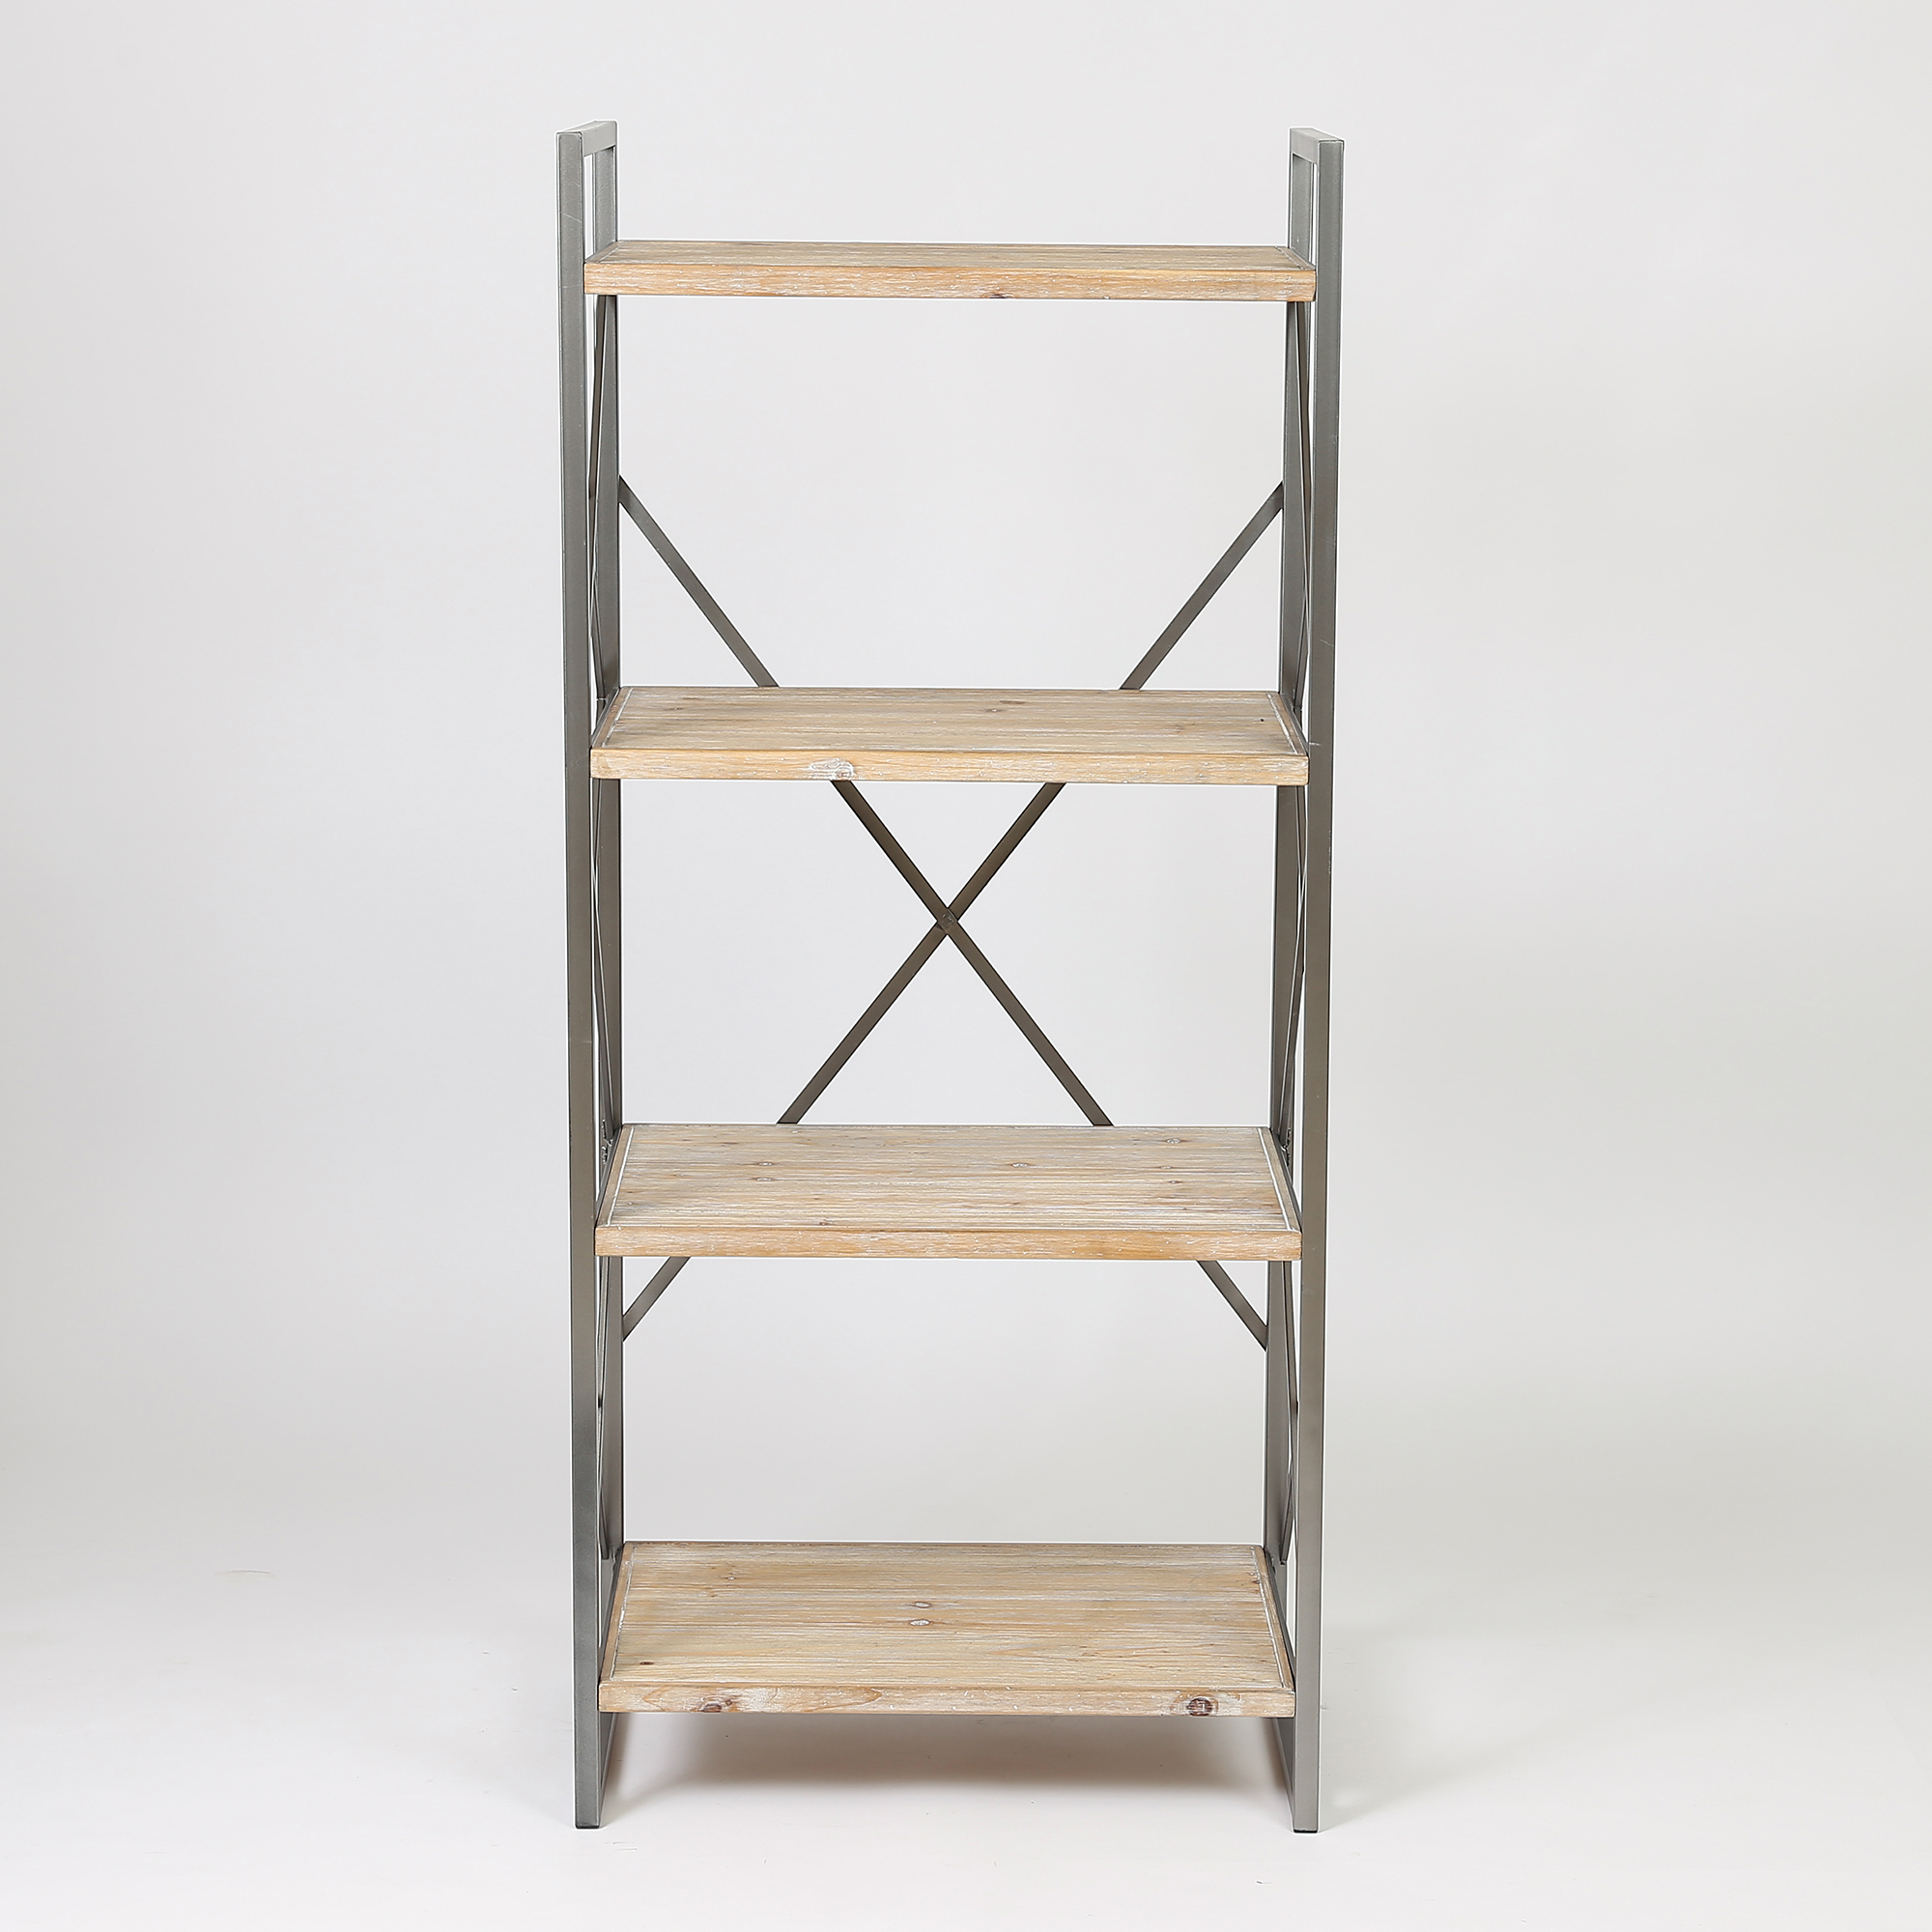 54in. Etagere Bookcase by Winsome House